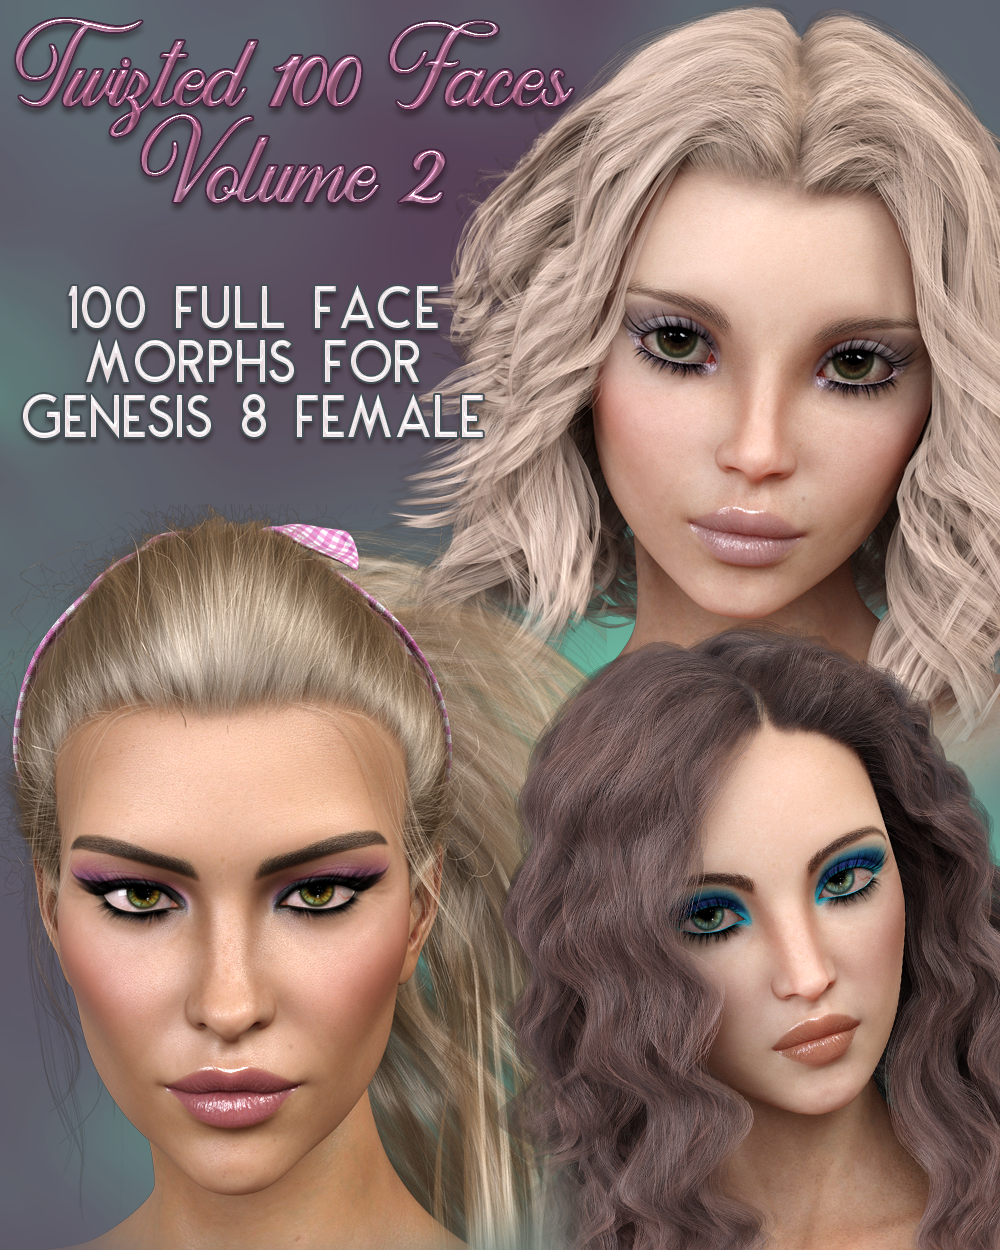 Twizted 100 Faces Volume 2 for Genesis 8 Female by TwiztedMetal